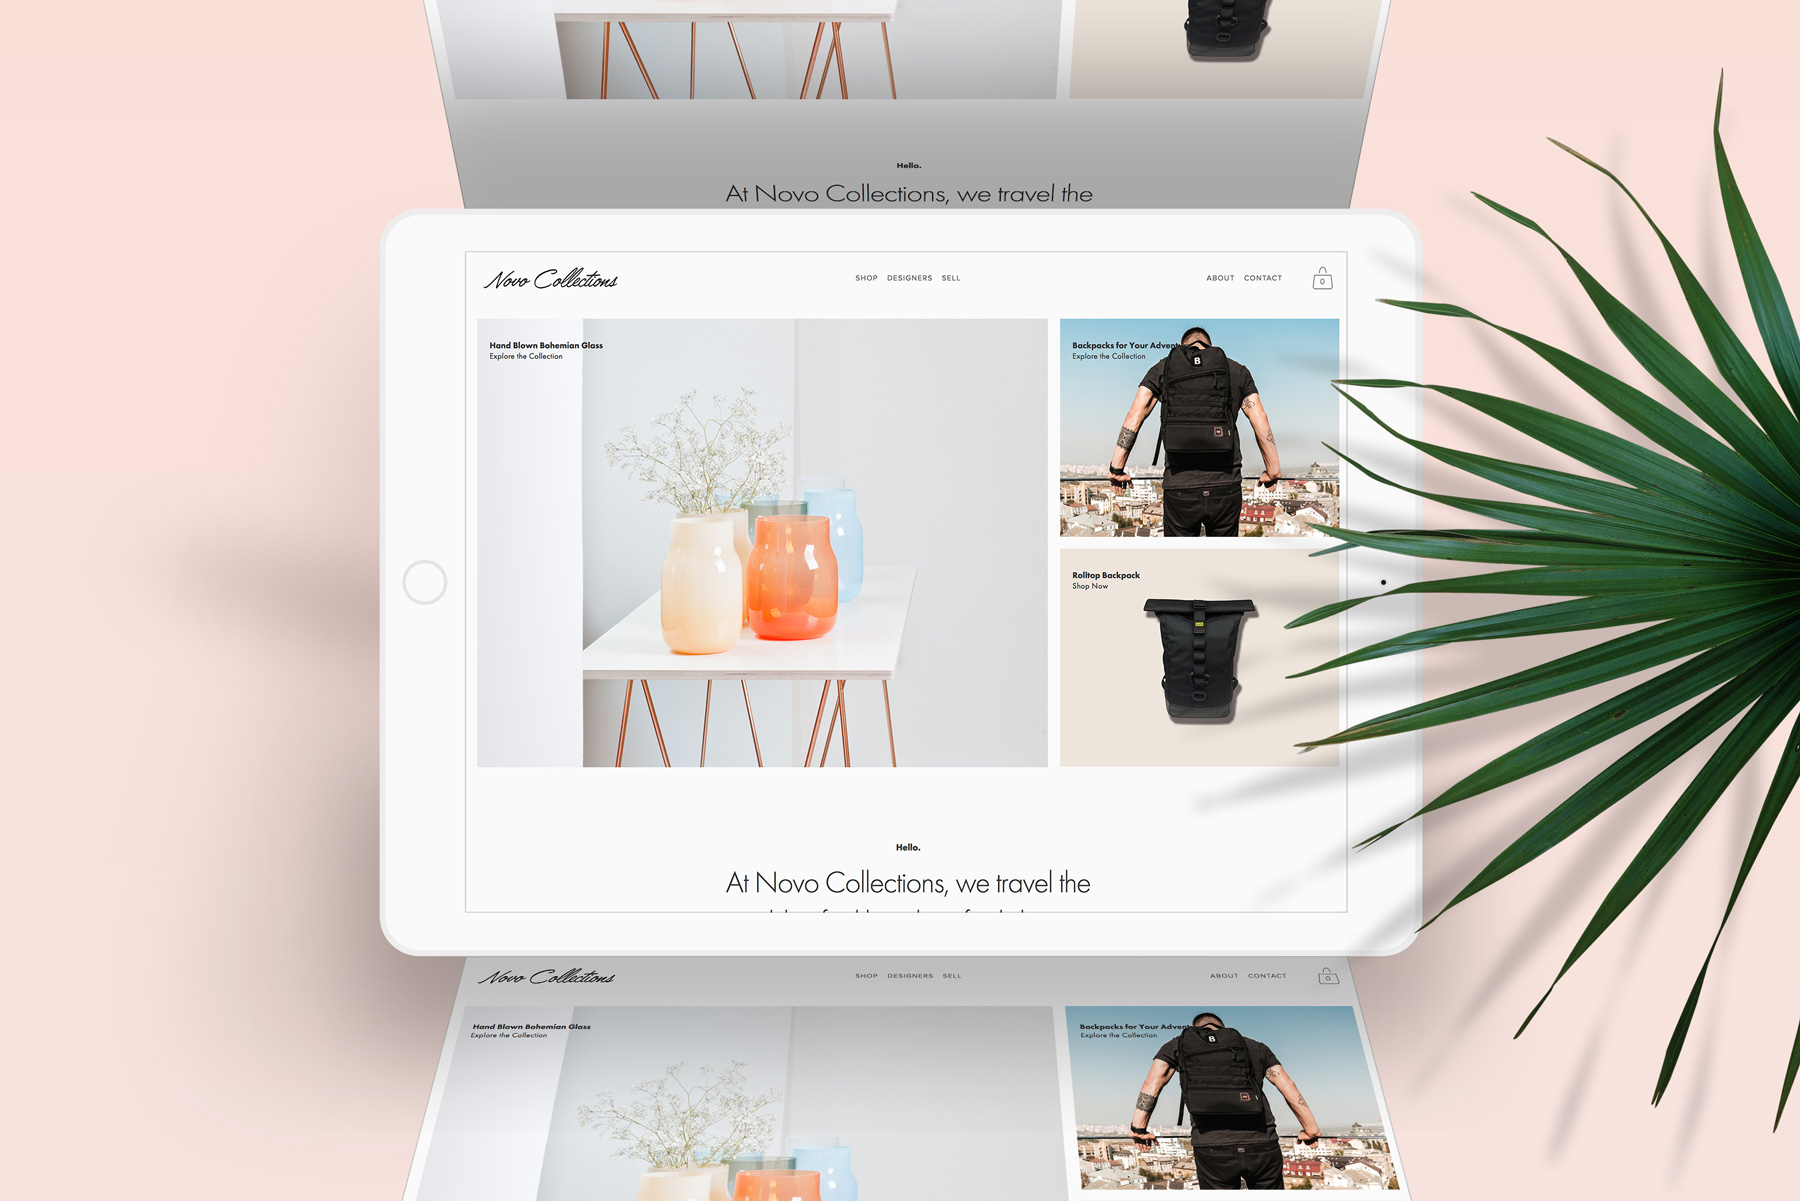 E-COMMERCE STORE   Novo Collections is an online lifestyle store connecting independent artisans with customers around the world. The work included: logo design, brand strategy, brand voice, website and e-commerce design and creation, social media strategy.   www.novocollections.com